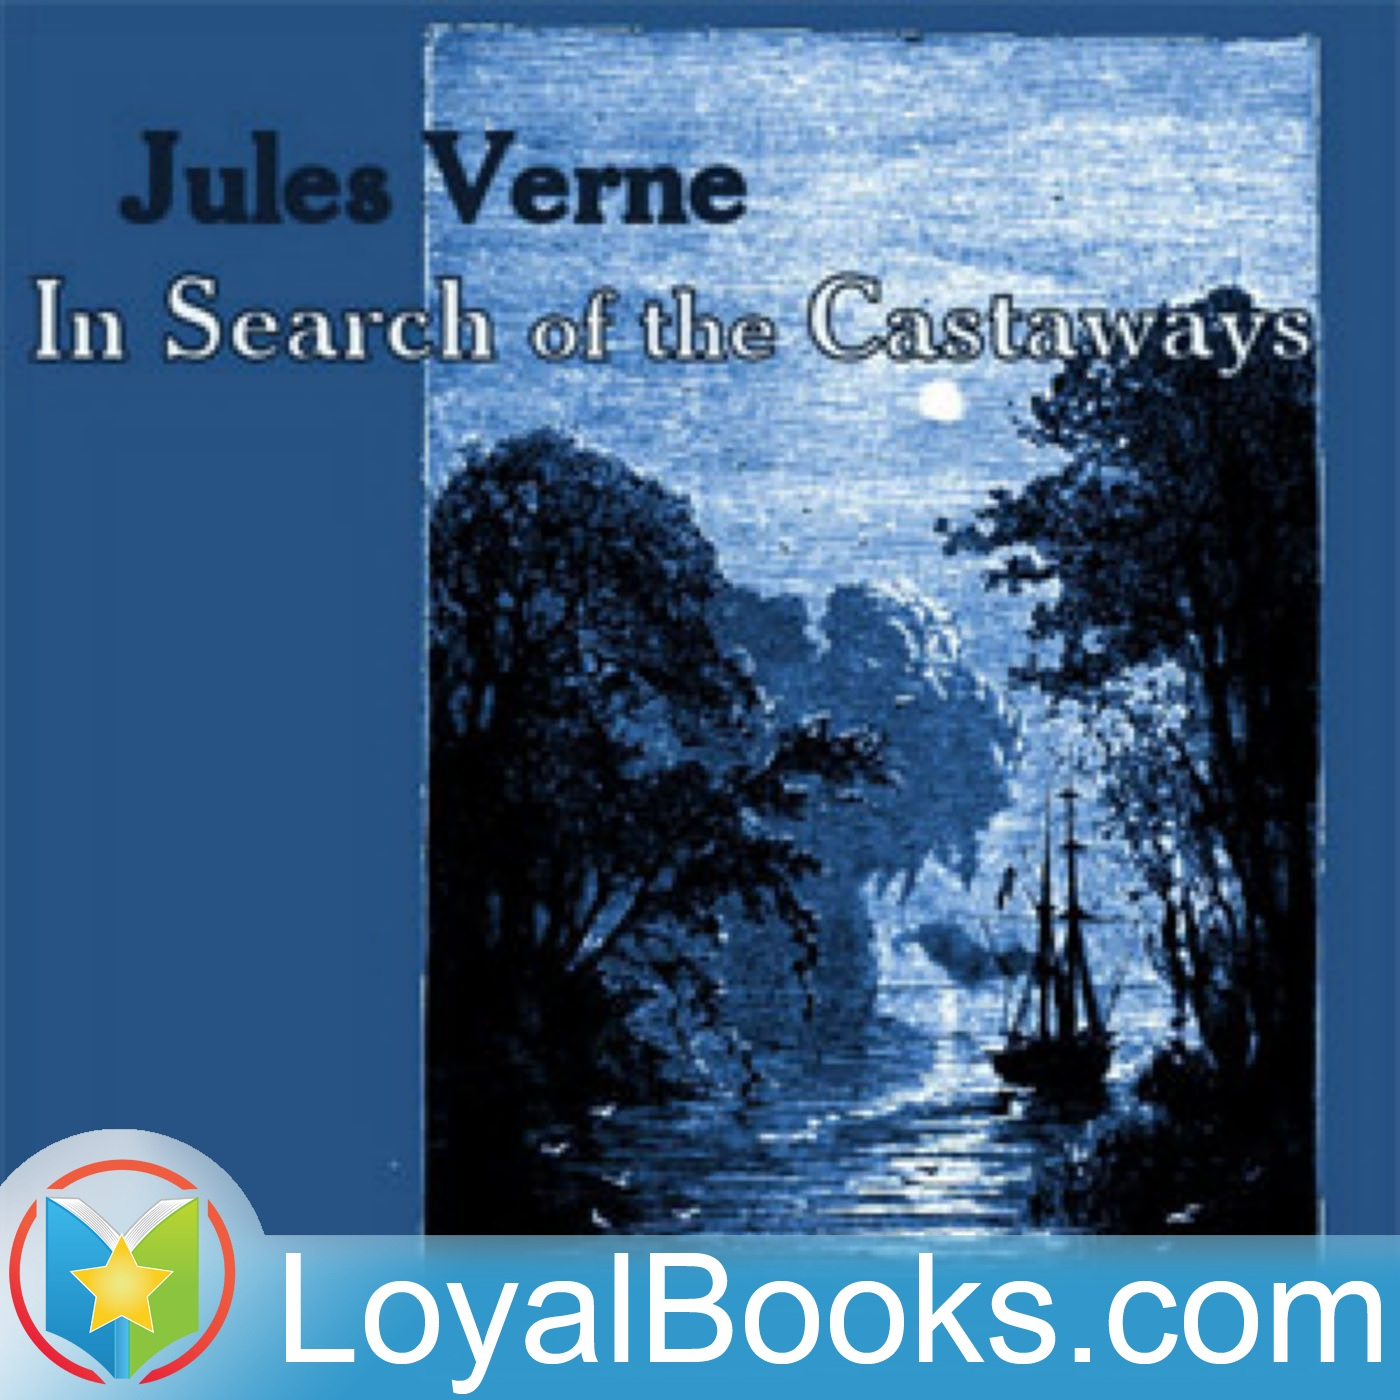 <![CDATA[In Search of the Castaways by Jules Verne]]>